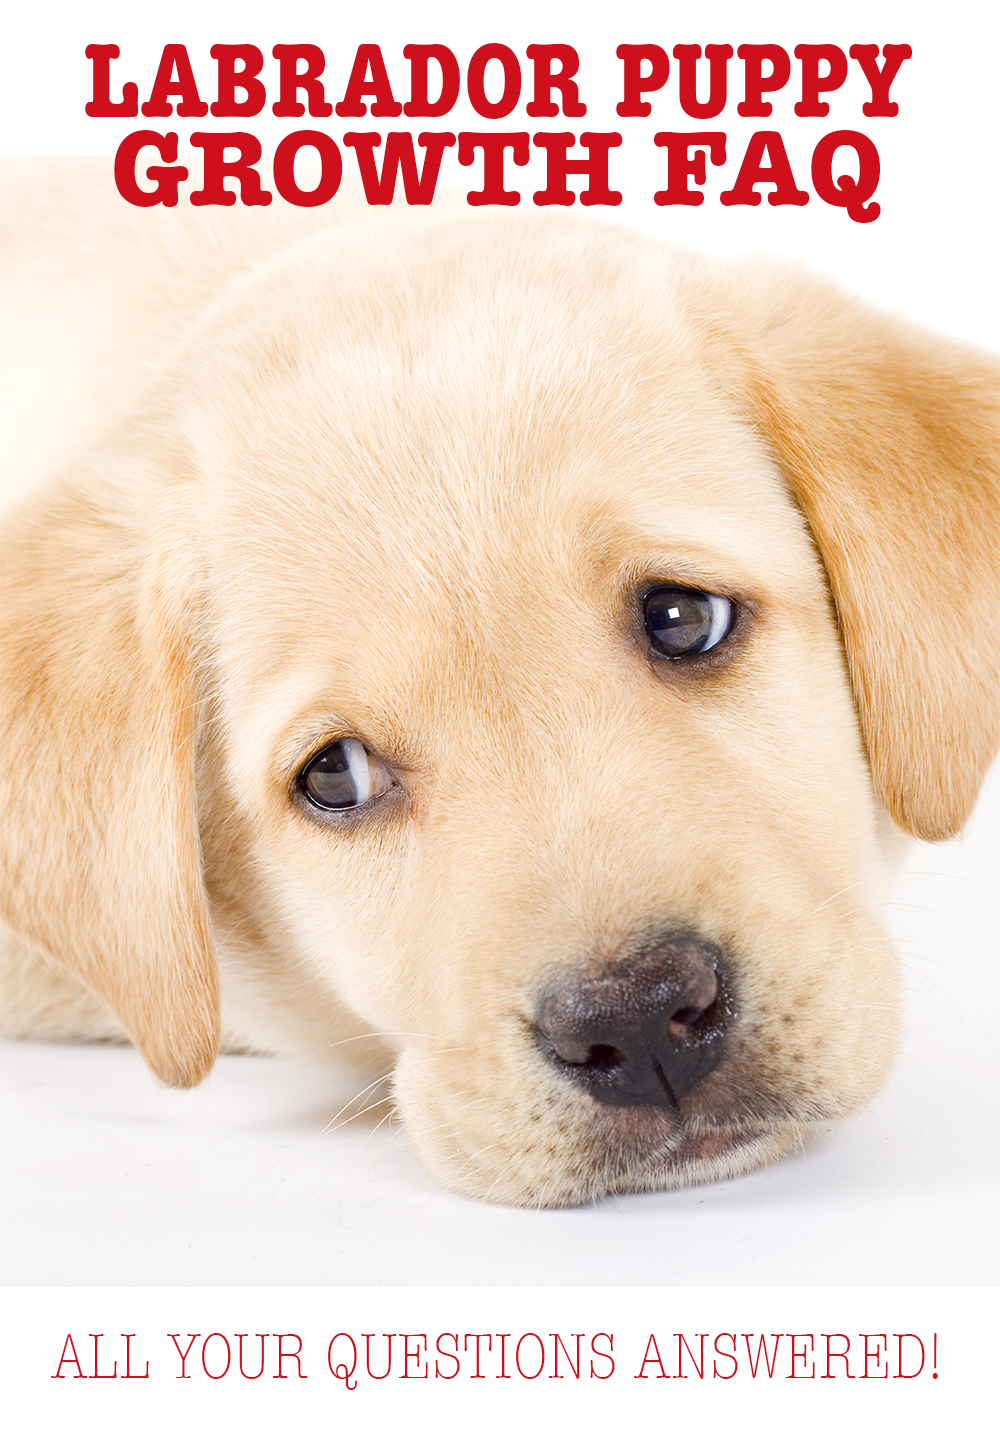 When Do Dogs Stop Growing? Labrador Puppy Growth Chart And FAQ | Labrador  retriever training, Labrador puppy, Labrador retriever